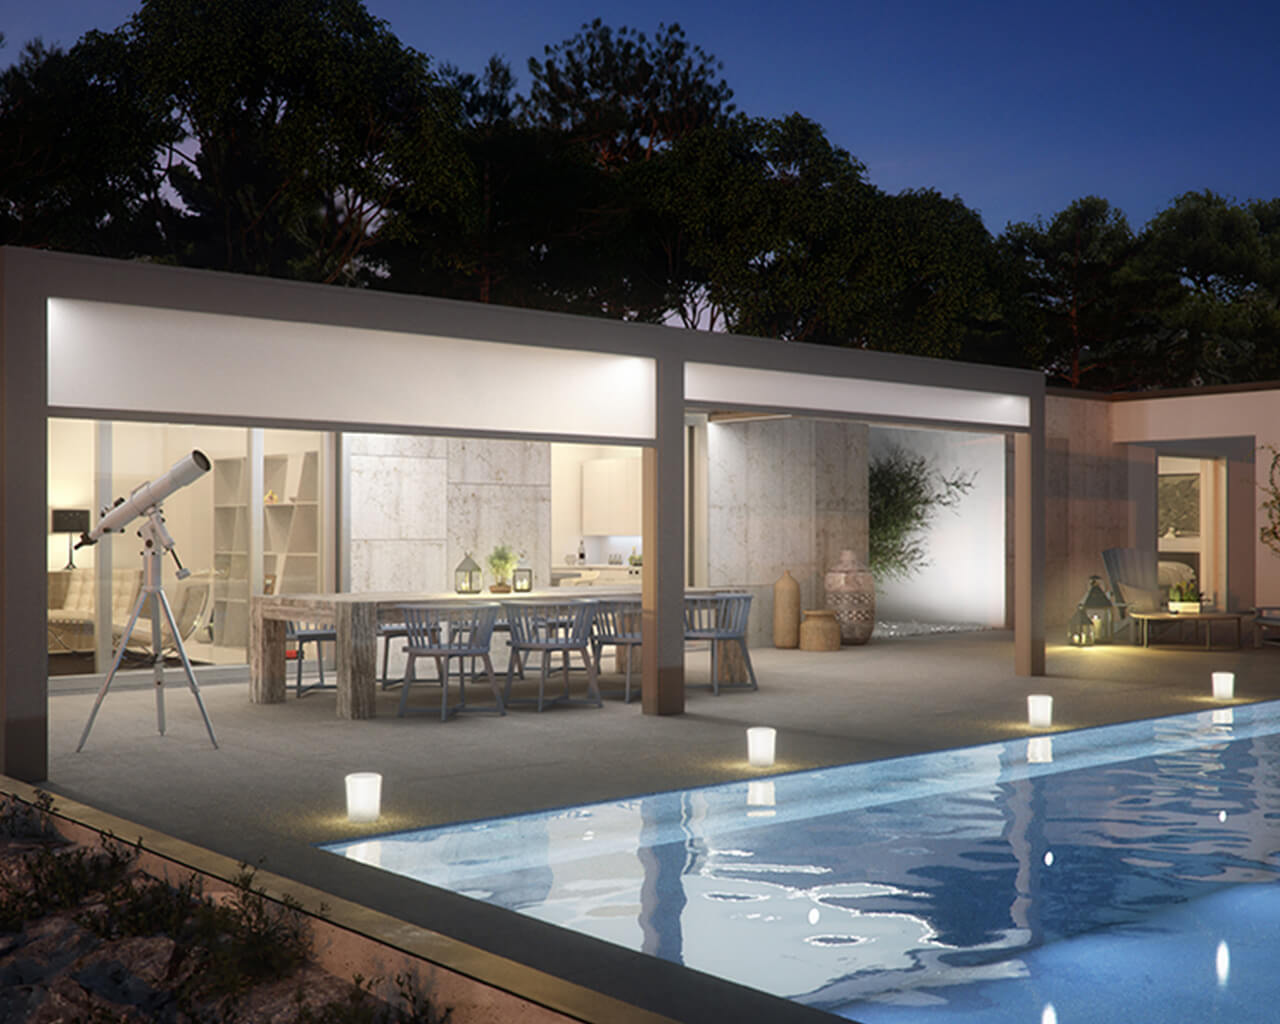 Garden room near a pool, during night time - Opera system